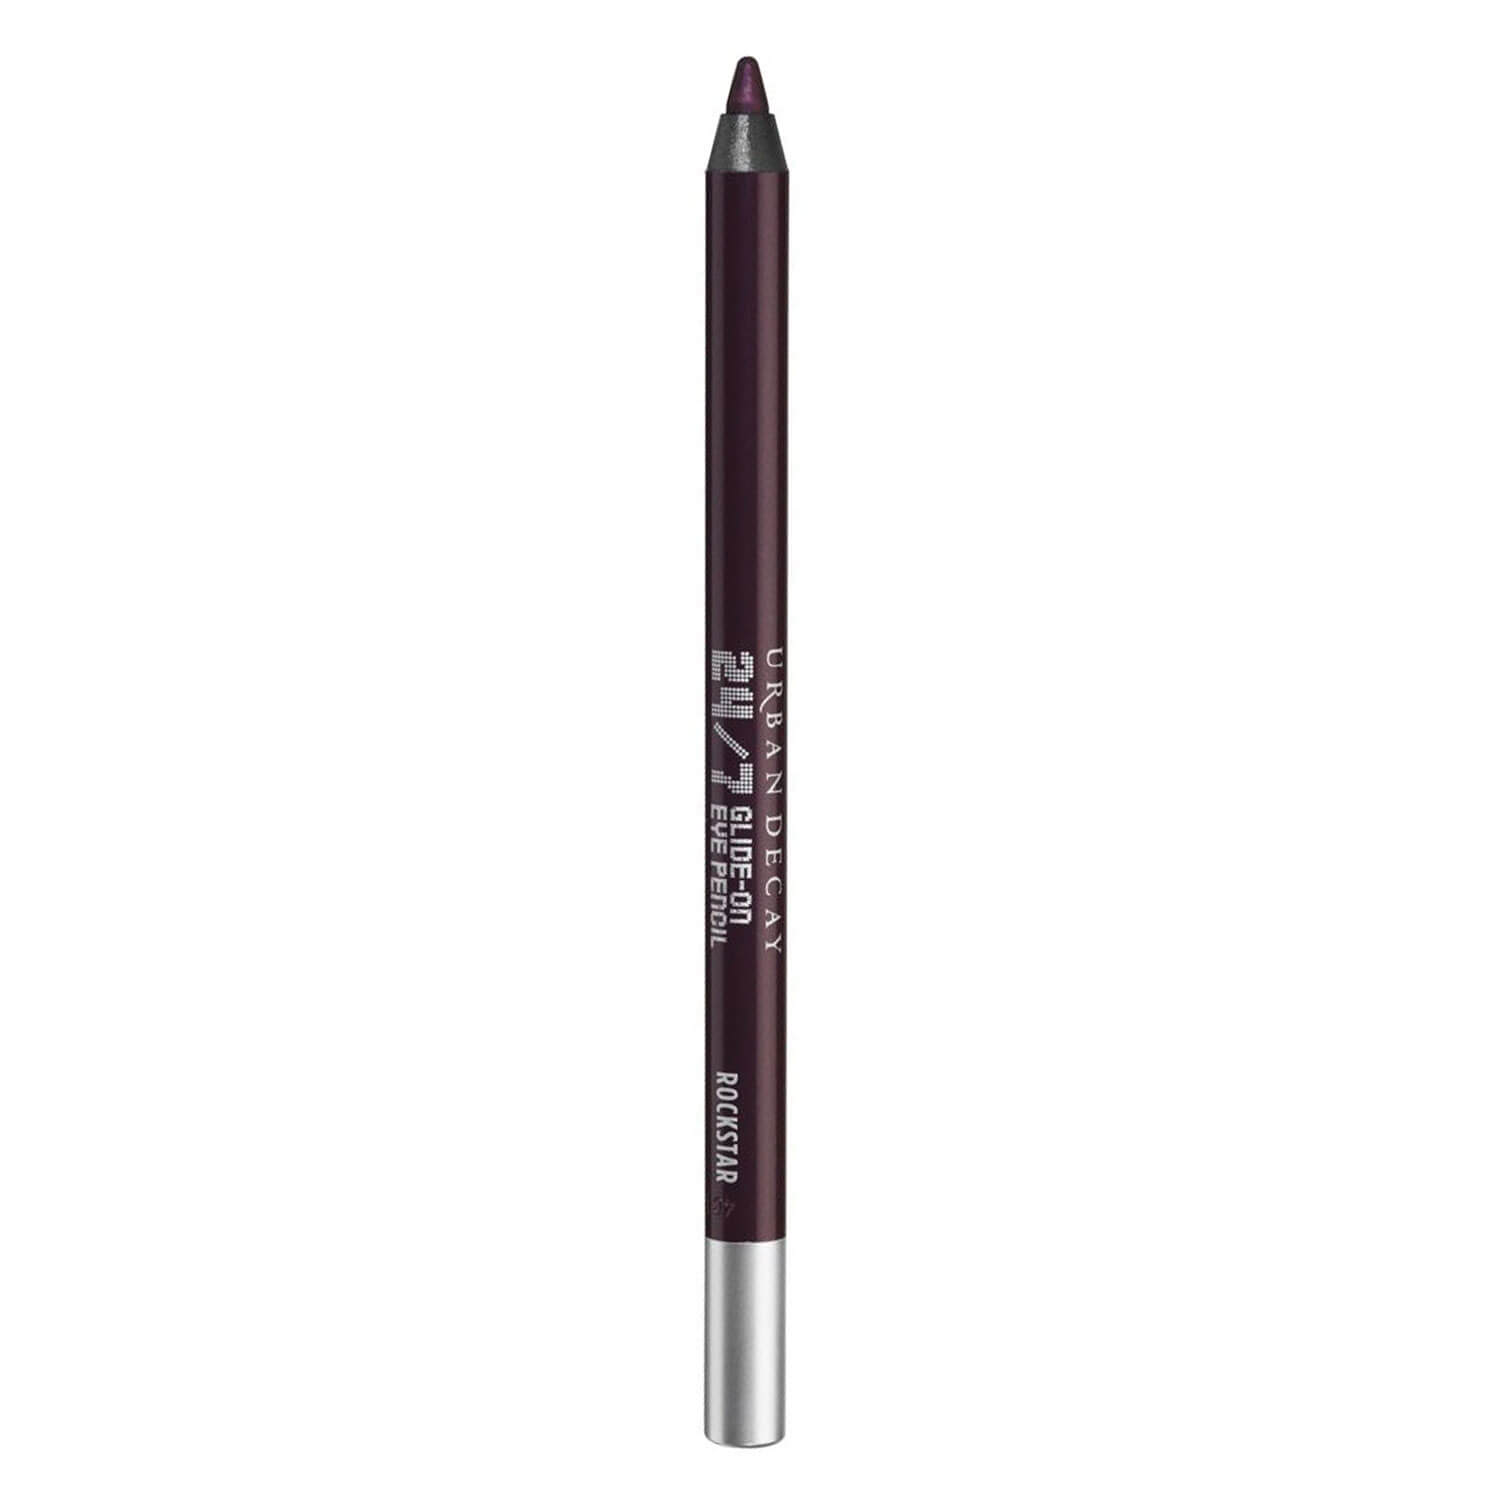 24/7 Glide-On - Eye Pencil Rockstar